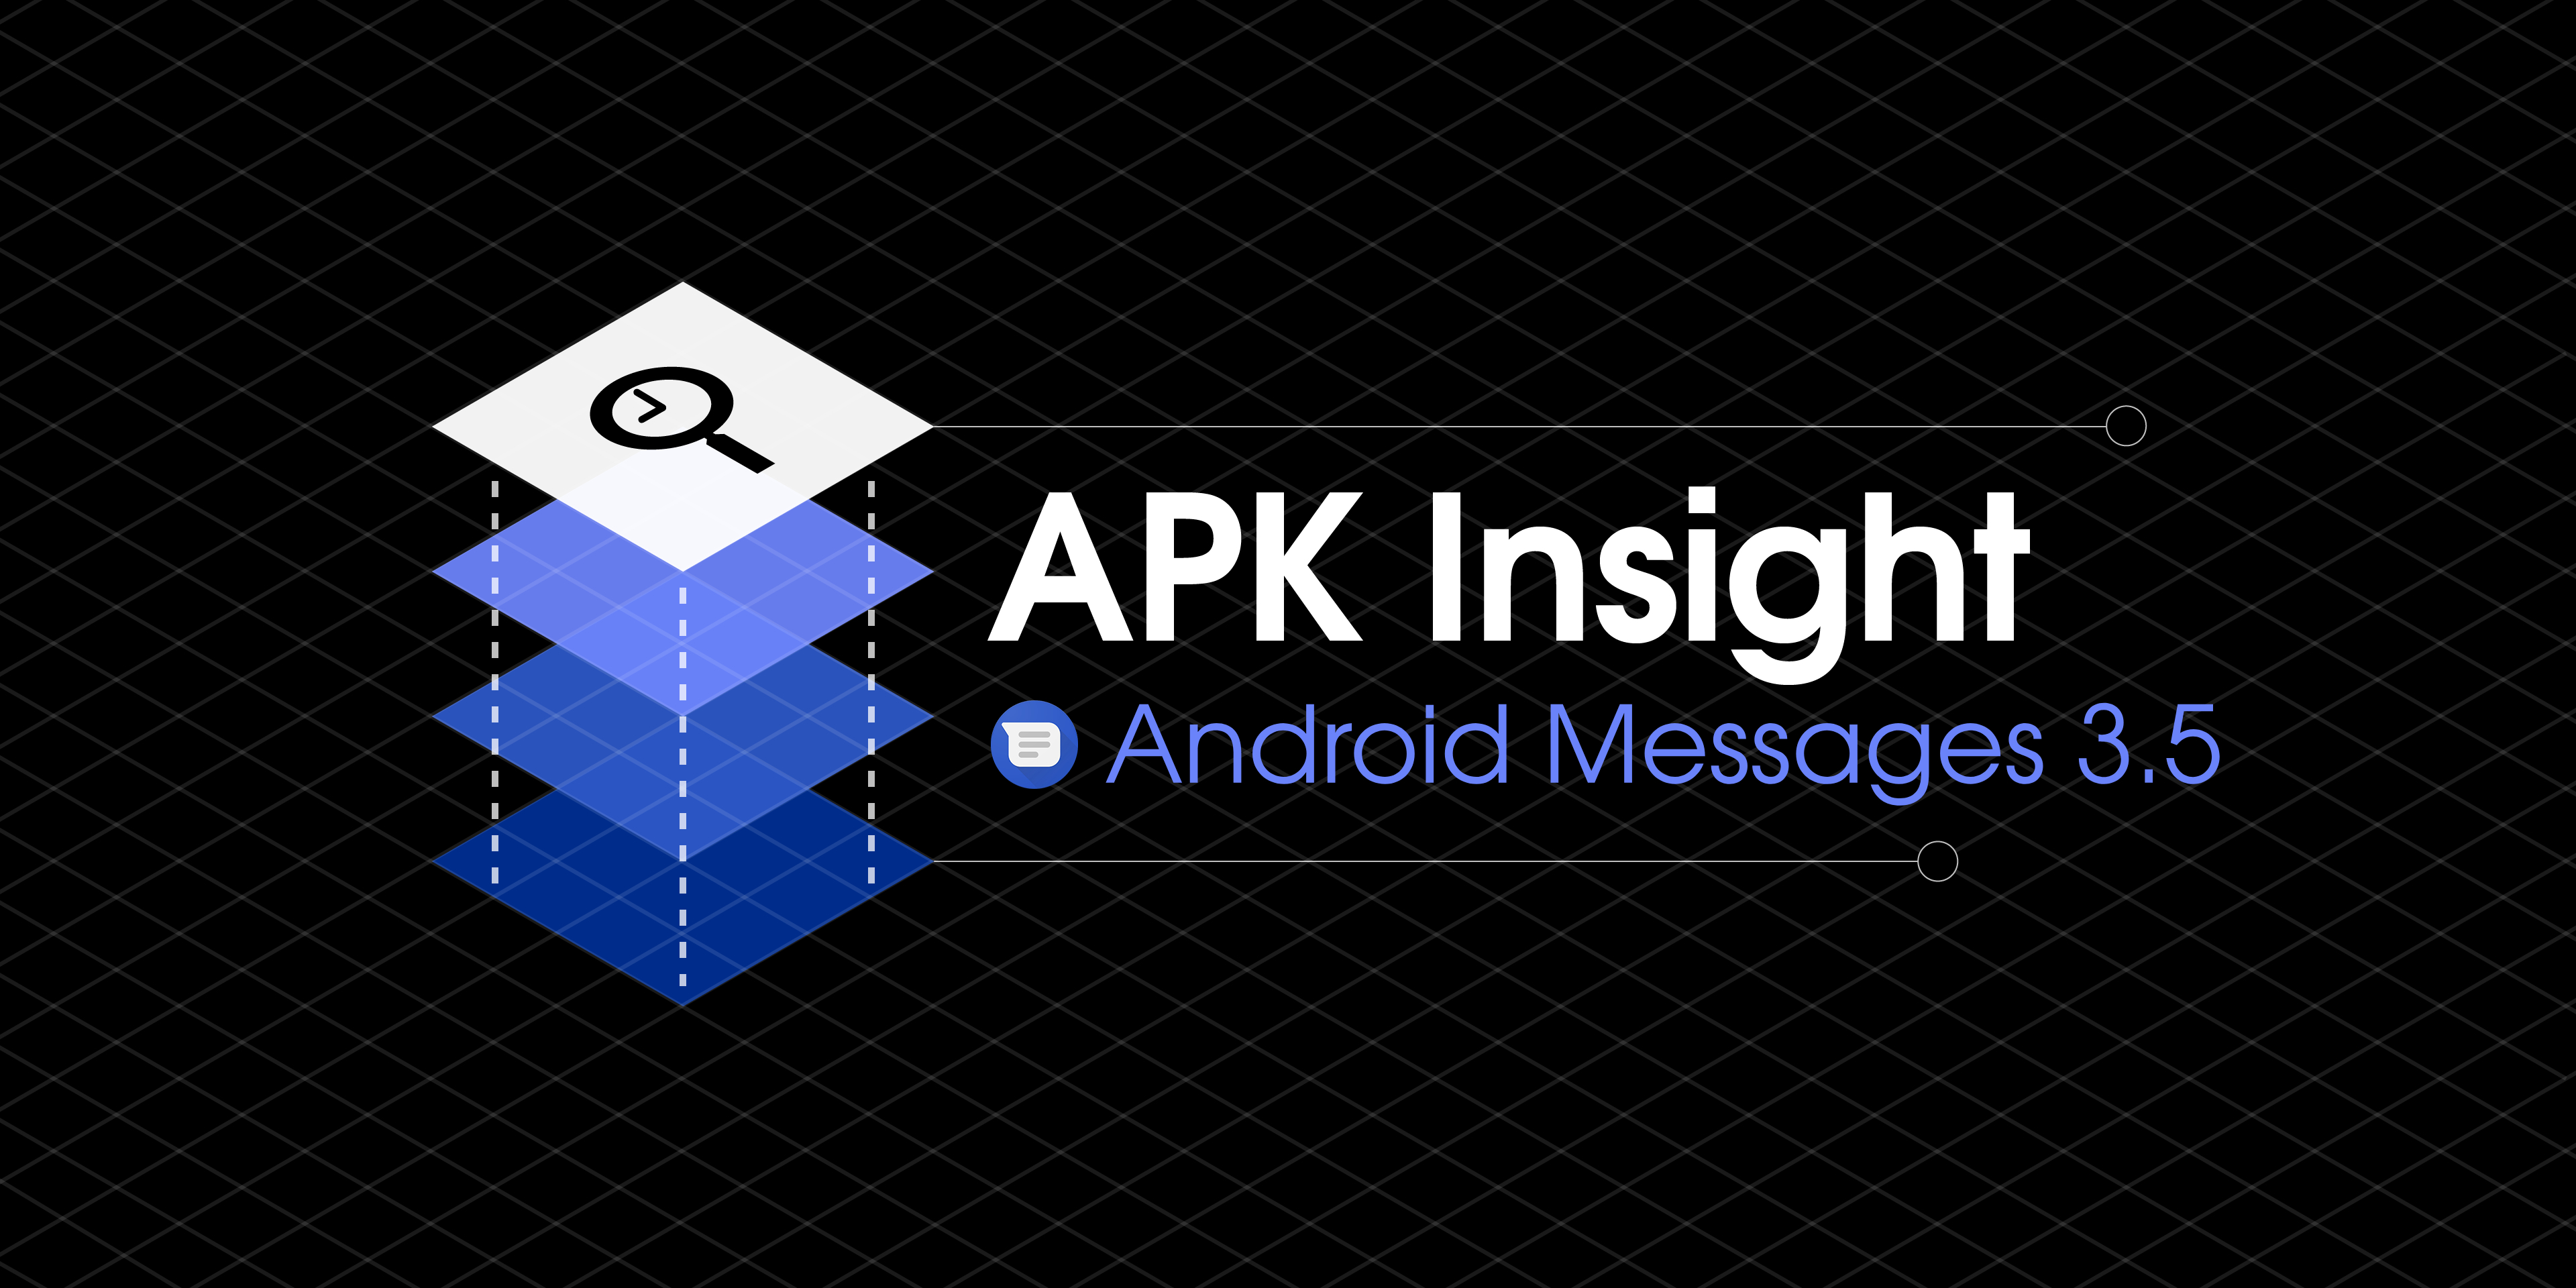 android messages 3 5 preps custom minis avatar stickers revamped search apk insight